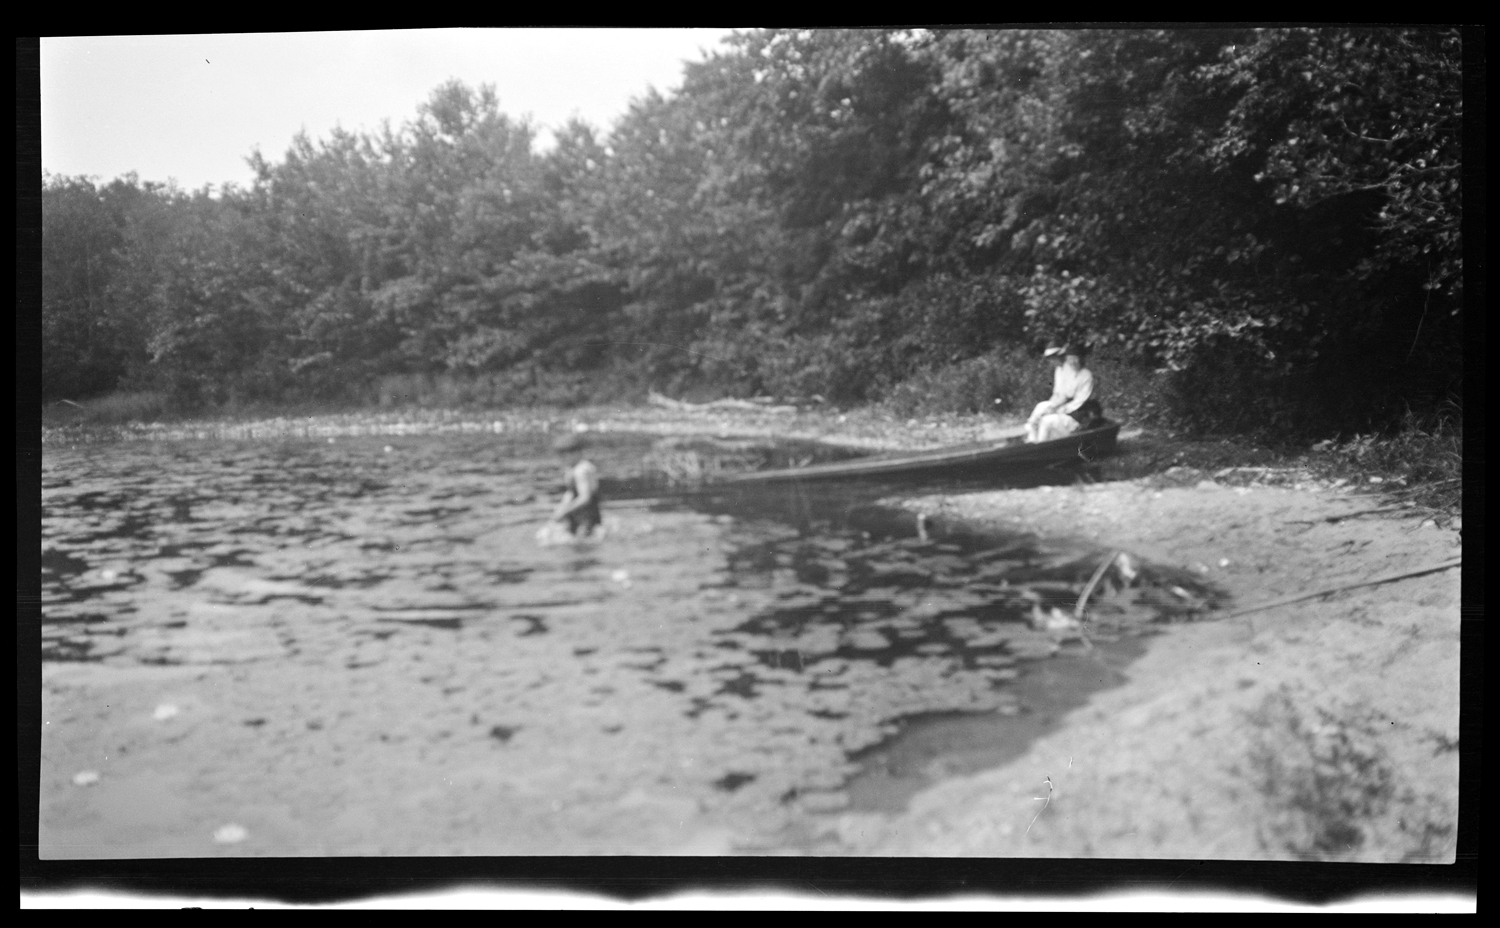 Boy in water and two people sitting in canoe on shore of Indian Pond